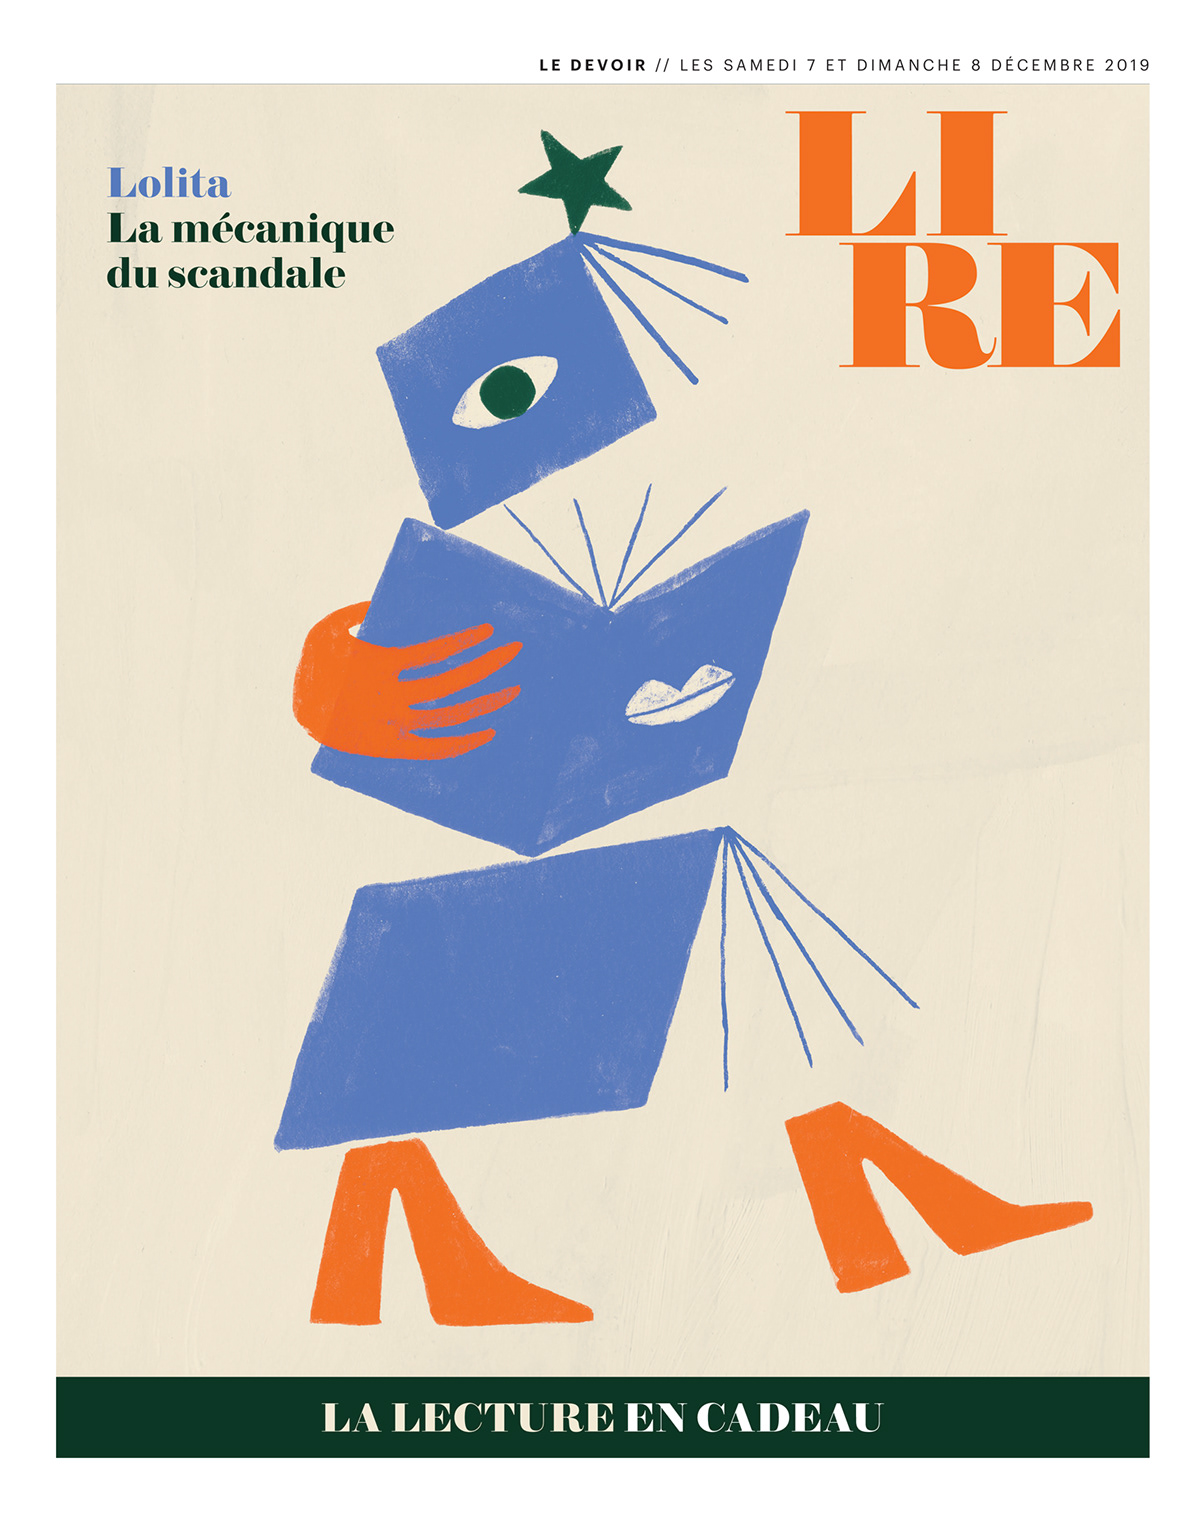 books Christmas editorial gifts ILLUSTRATION  journal le devoir literature